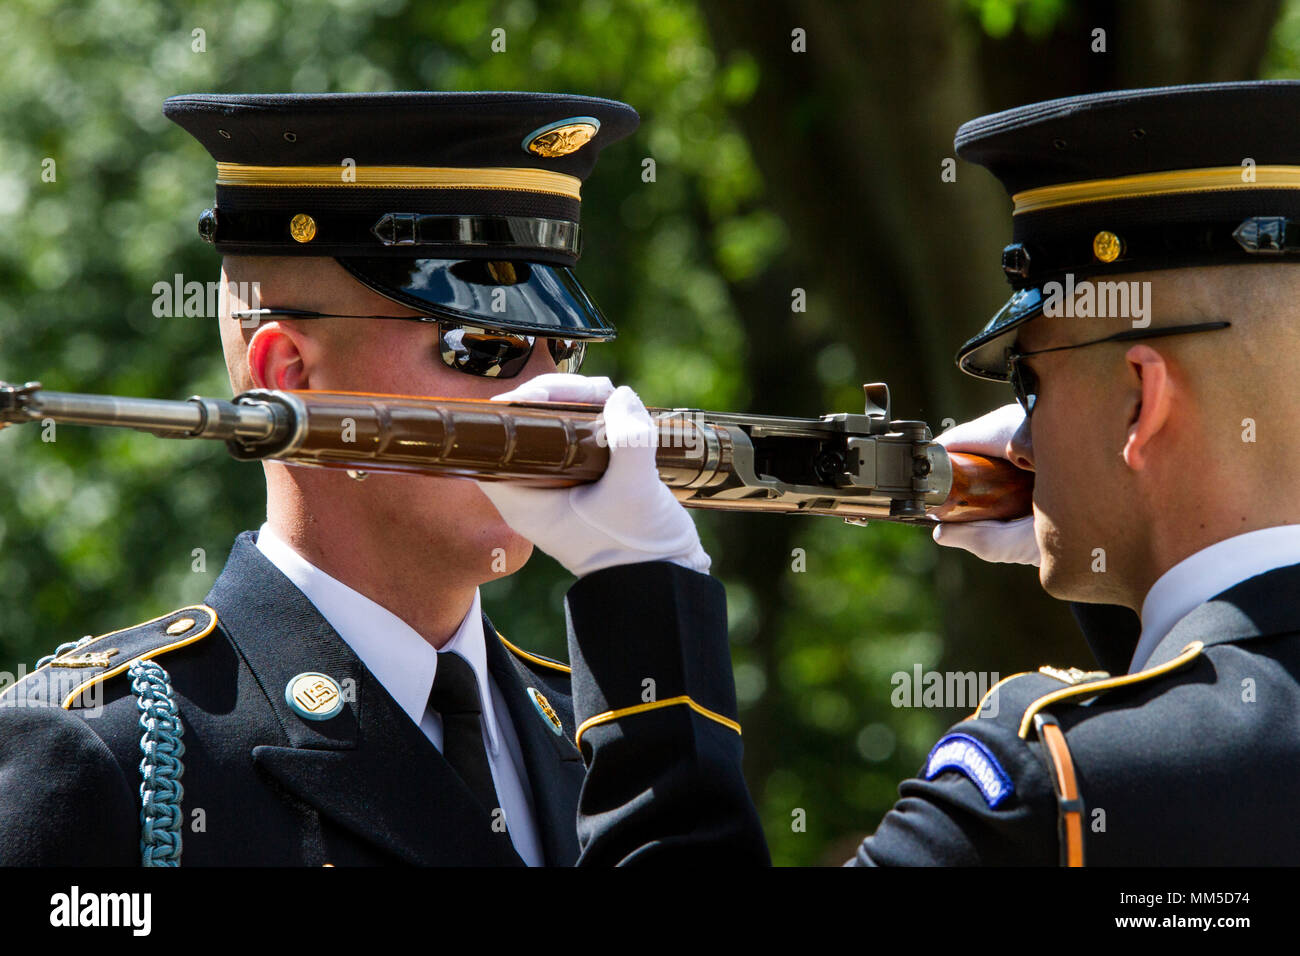 A relief commander conducts an inspection of a sentinel's rifle during the changing of the guard at the Tomb of the Unknown Soldier at Arlington National Cemetery in Arlington, Virginia, Sept. 7, 2017. Noncommissioned officers with the 200th Military Police Command, out of Fort Meade, Maryland, visited the national cemetery as part of their monthly NCO professional development training. The visit included a guided tour of the grounds by an Arlington National Cemetery historian, who showed Soldiers how to use the ANC mobile app to locate specific tombs and biographies of individuals buried at A - Stock Image